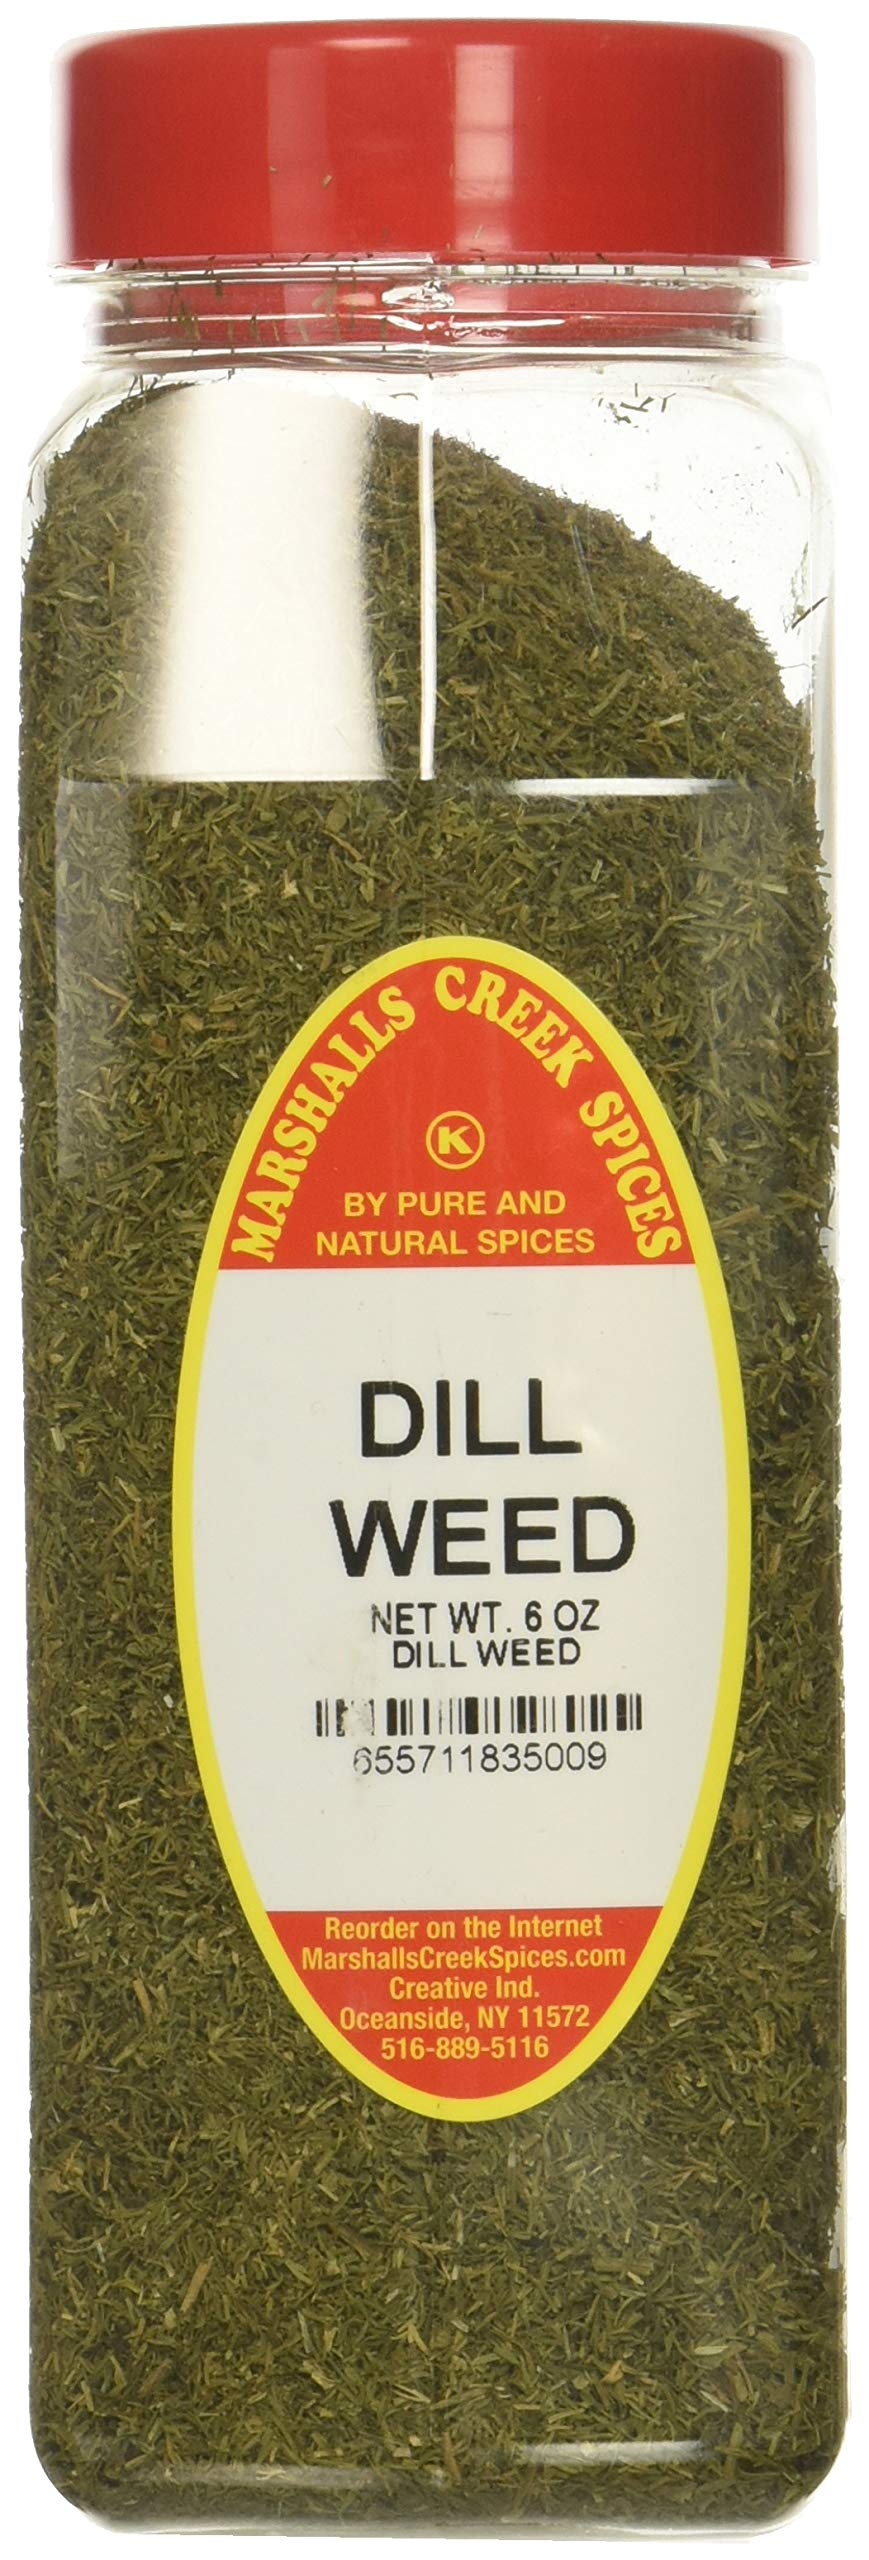 Marshalls Creek Spices XL Size Marshalls Creek Spices Dill Weed 6 Ounce , 6 Ounce